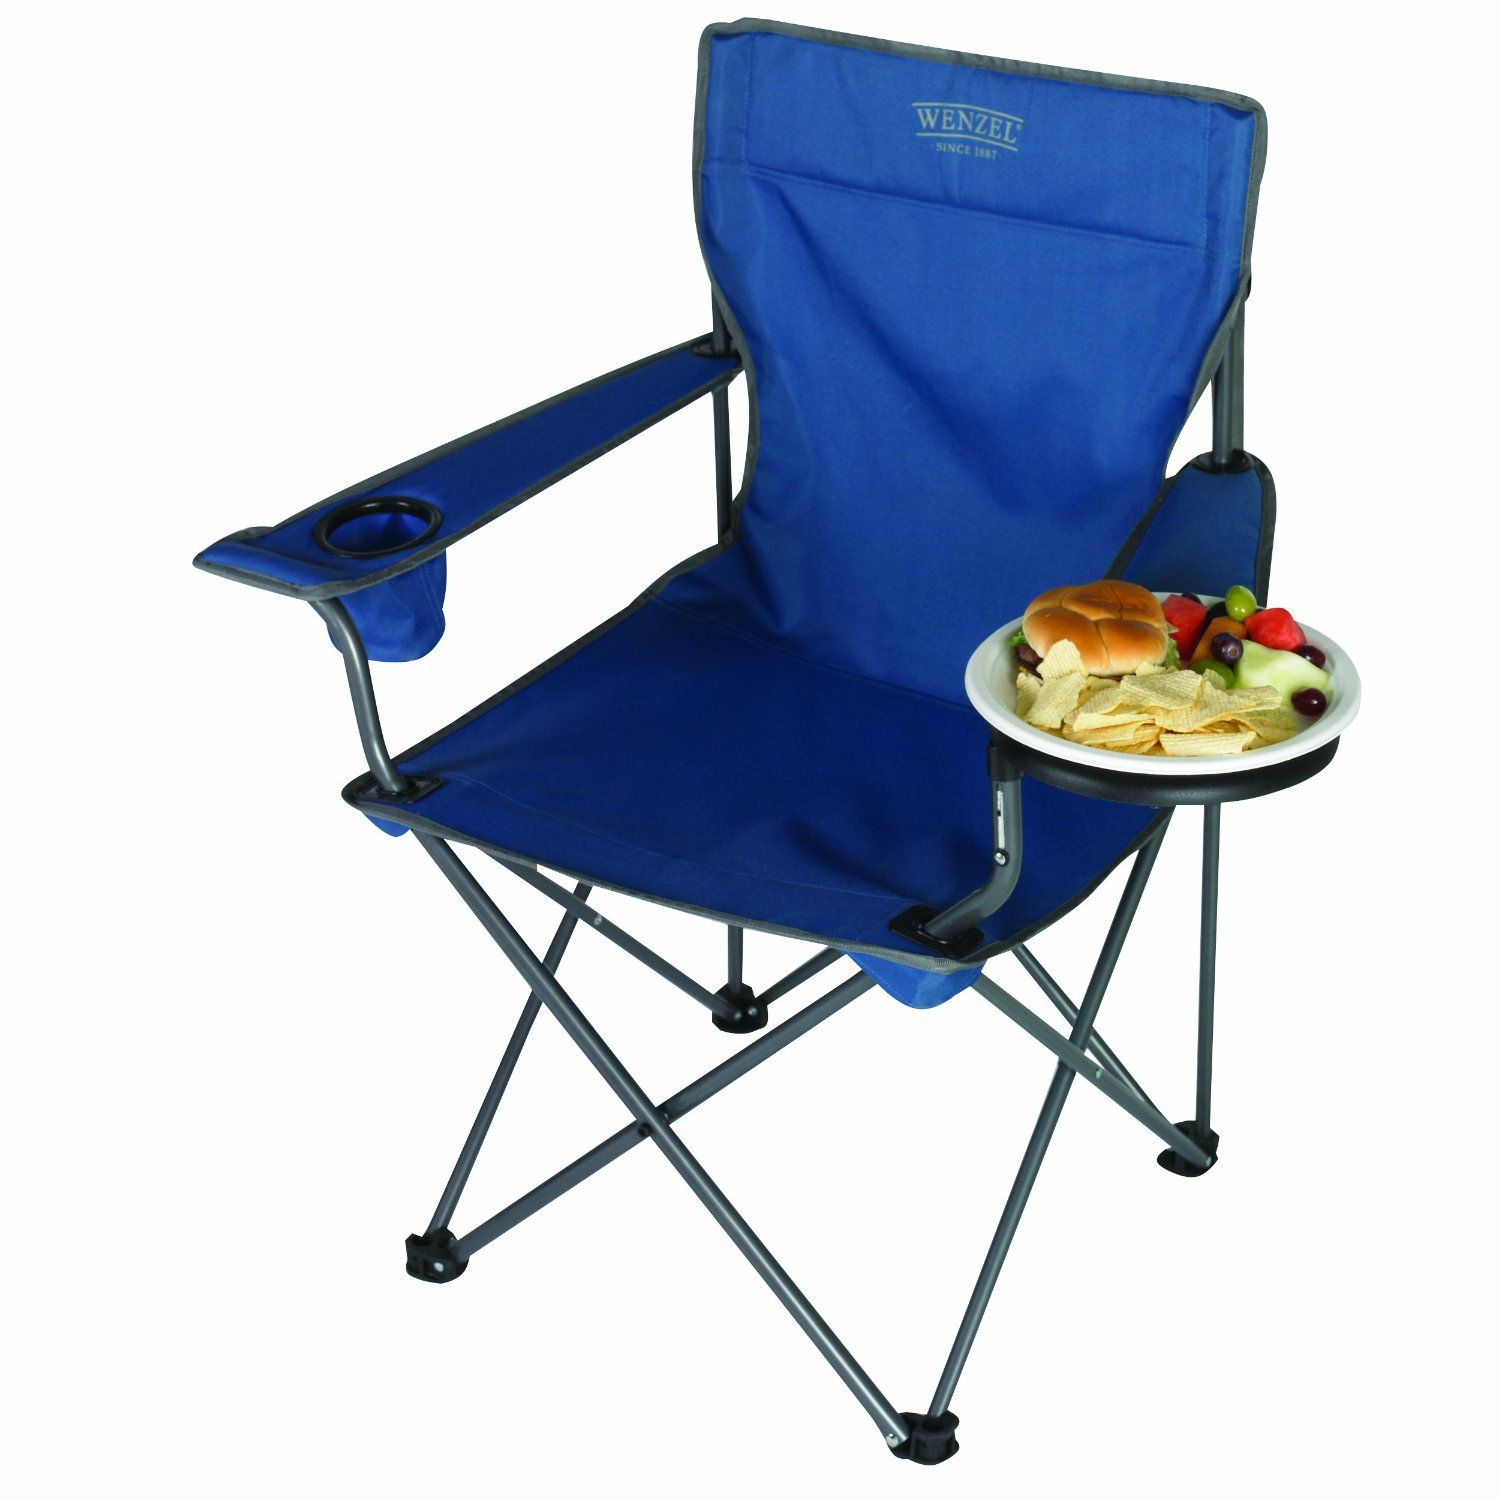 Wenzel Banquet Camping Chair Camping chairs, Outdoor